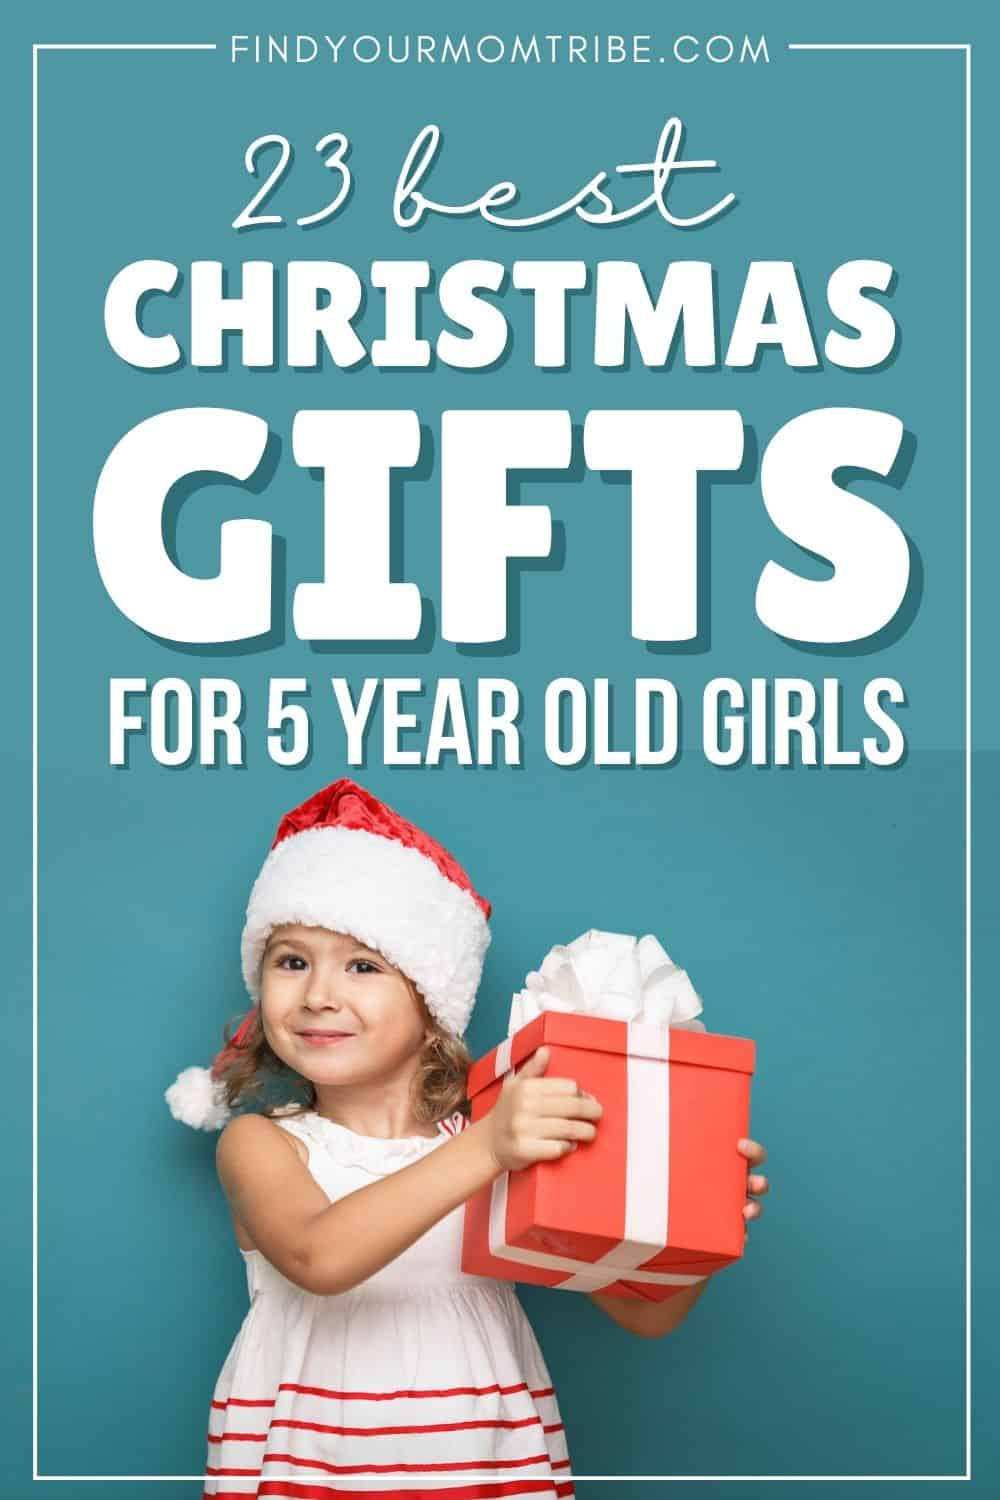 23 Best Christmas Gifts For 5 Year Old Girls In 2020